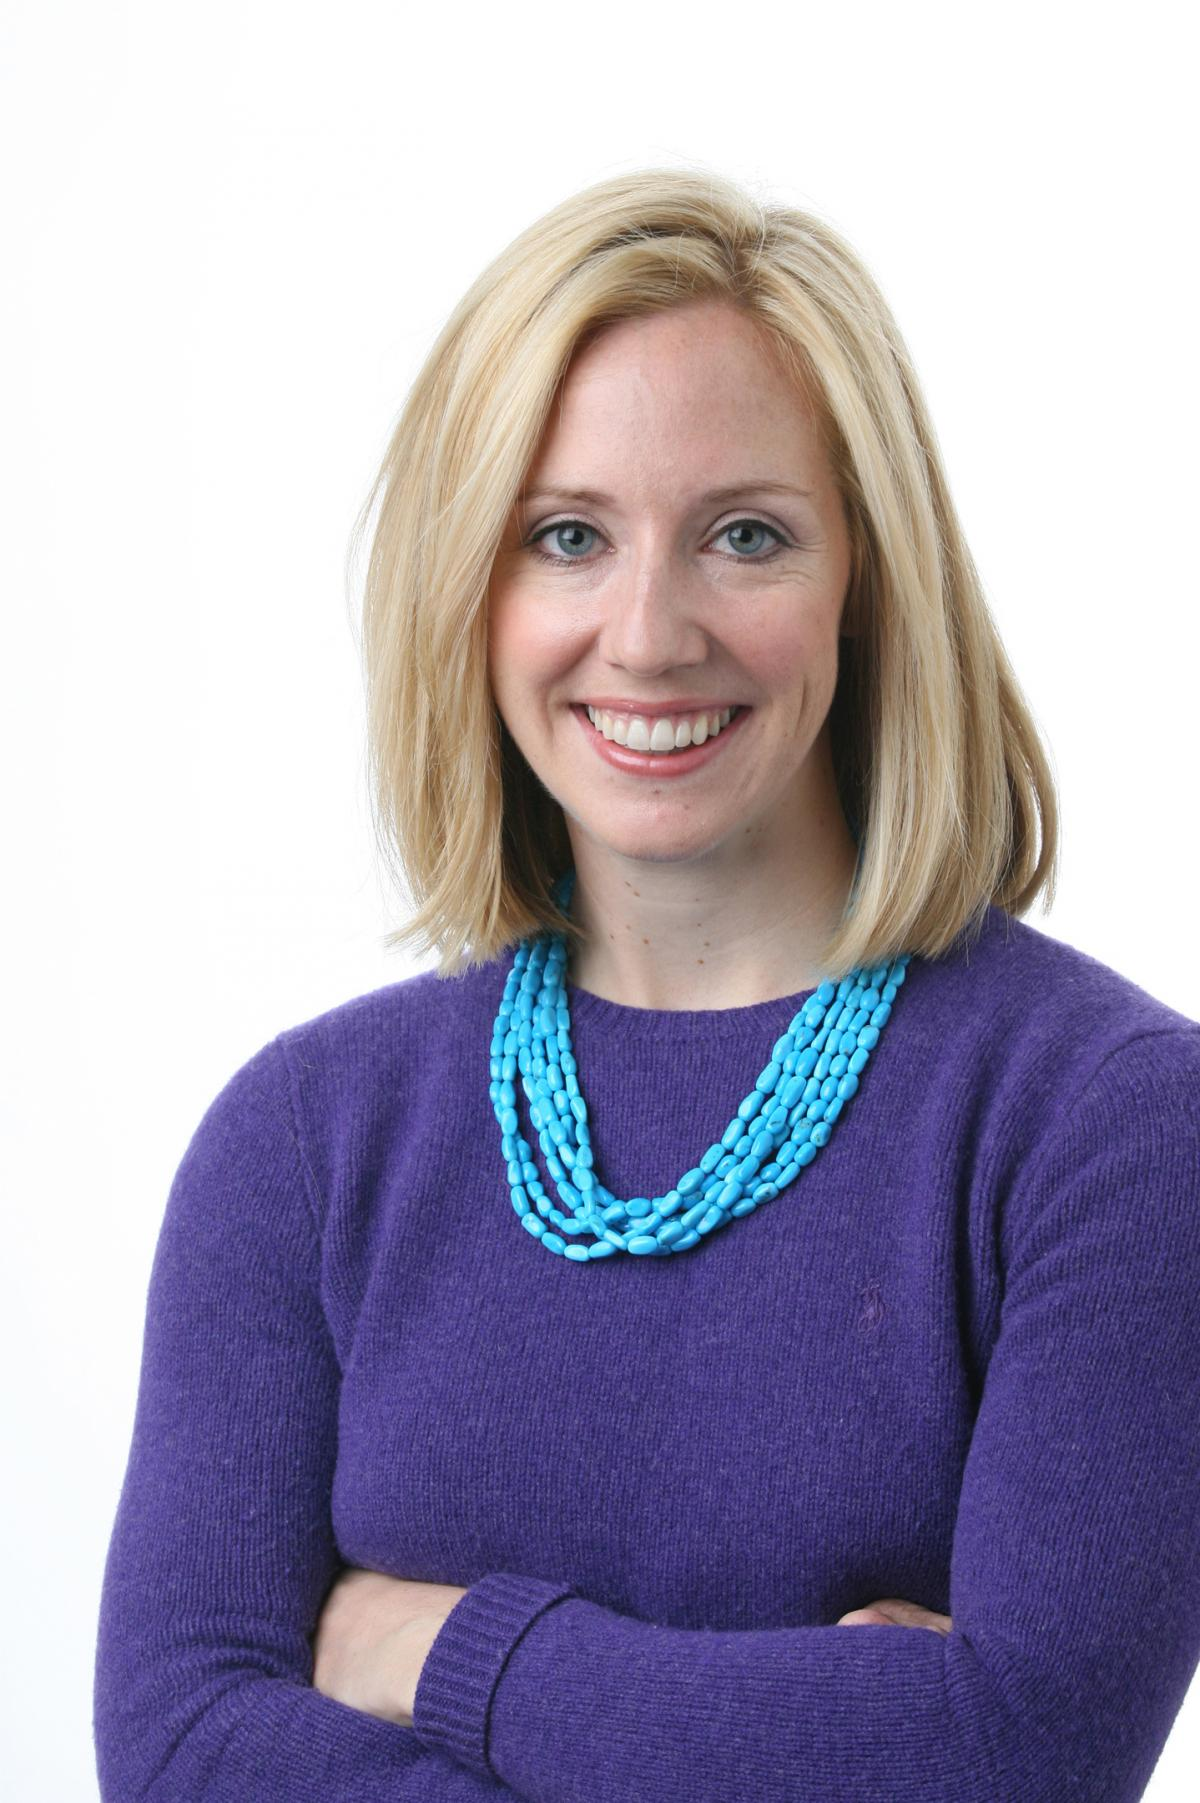 Louise Story is an investigative journalist for The New York Times, specializing in business reporting. In 2009 she was a finalist for the Pulitzer Prize in Public Service for her reporting on the financial crisis of 2008.